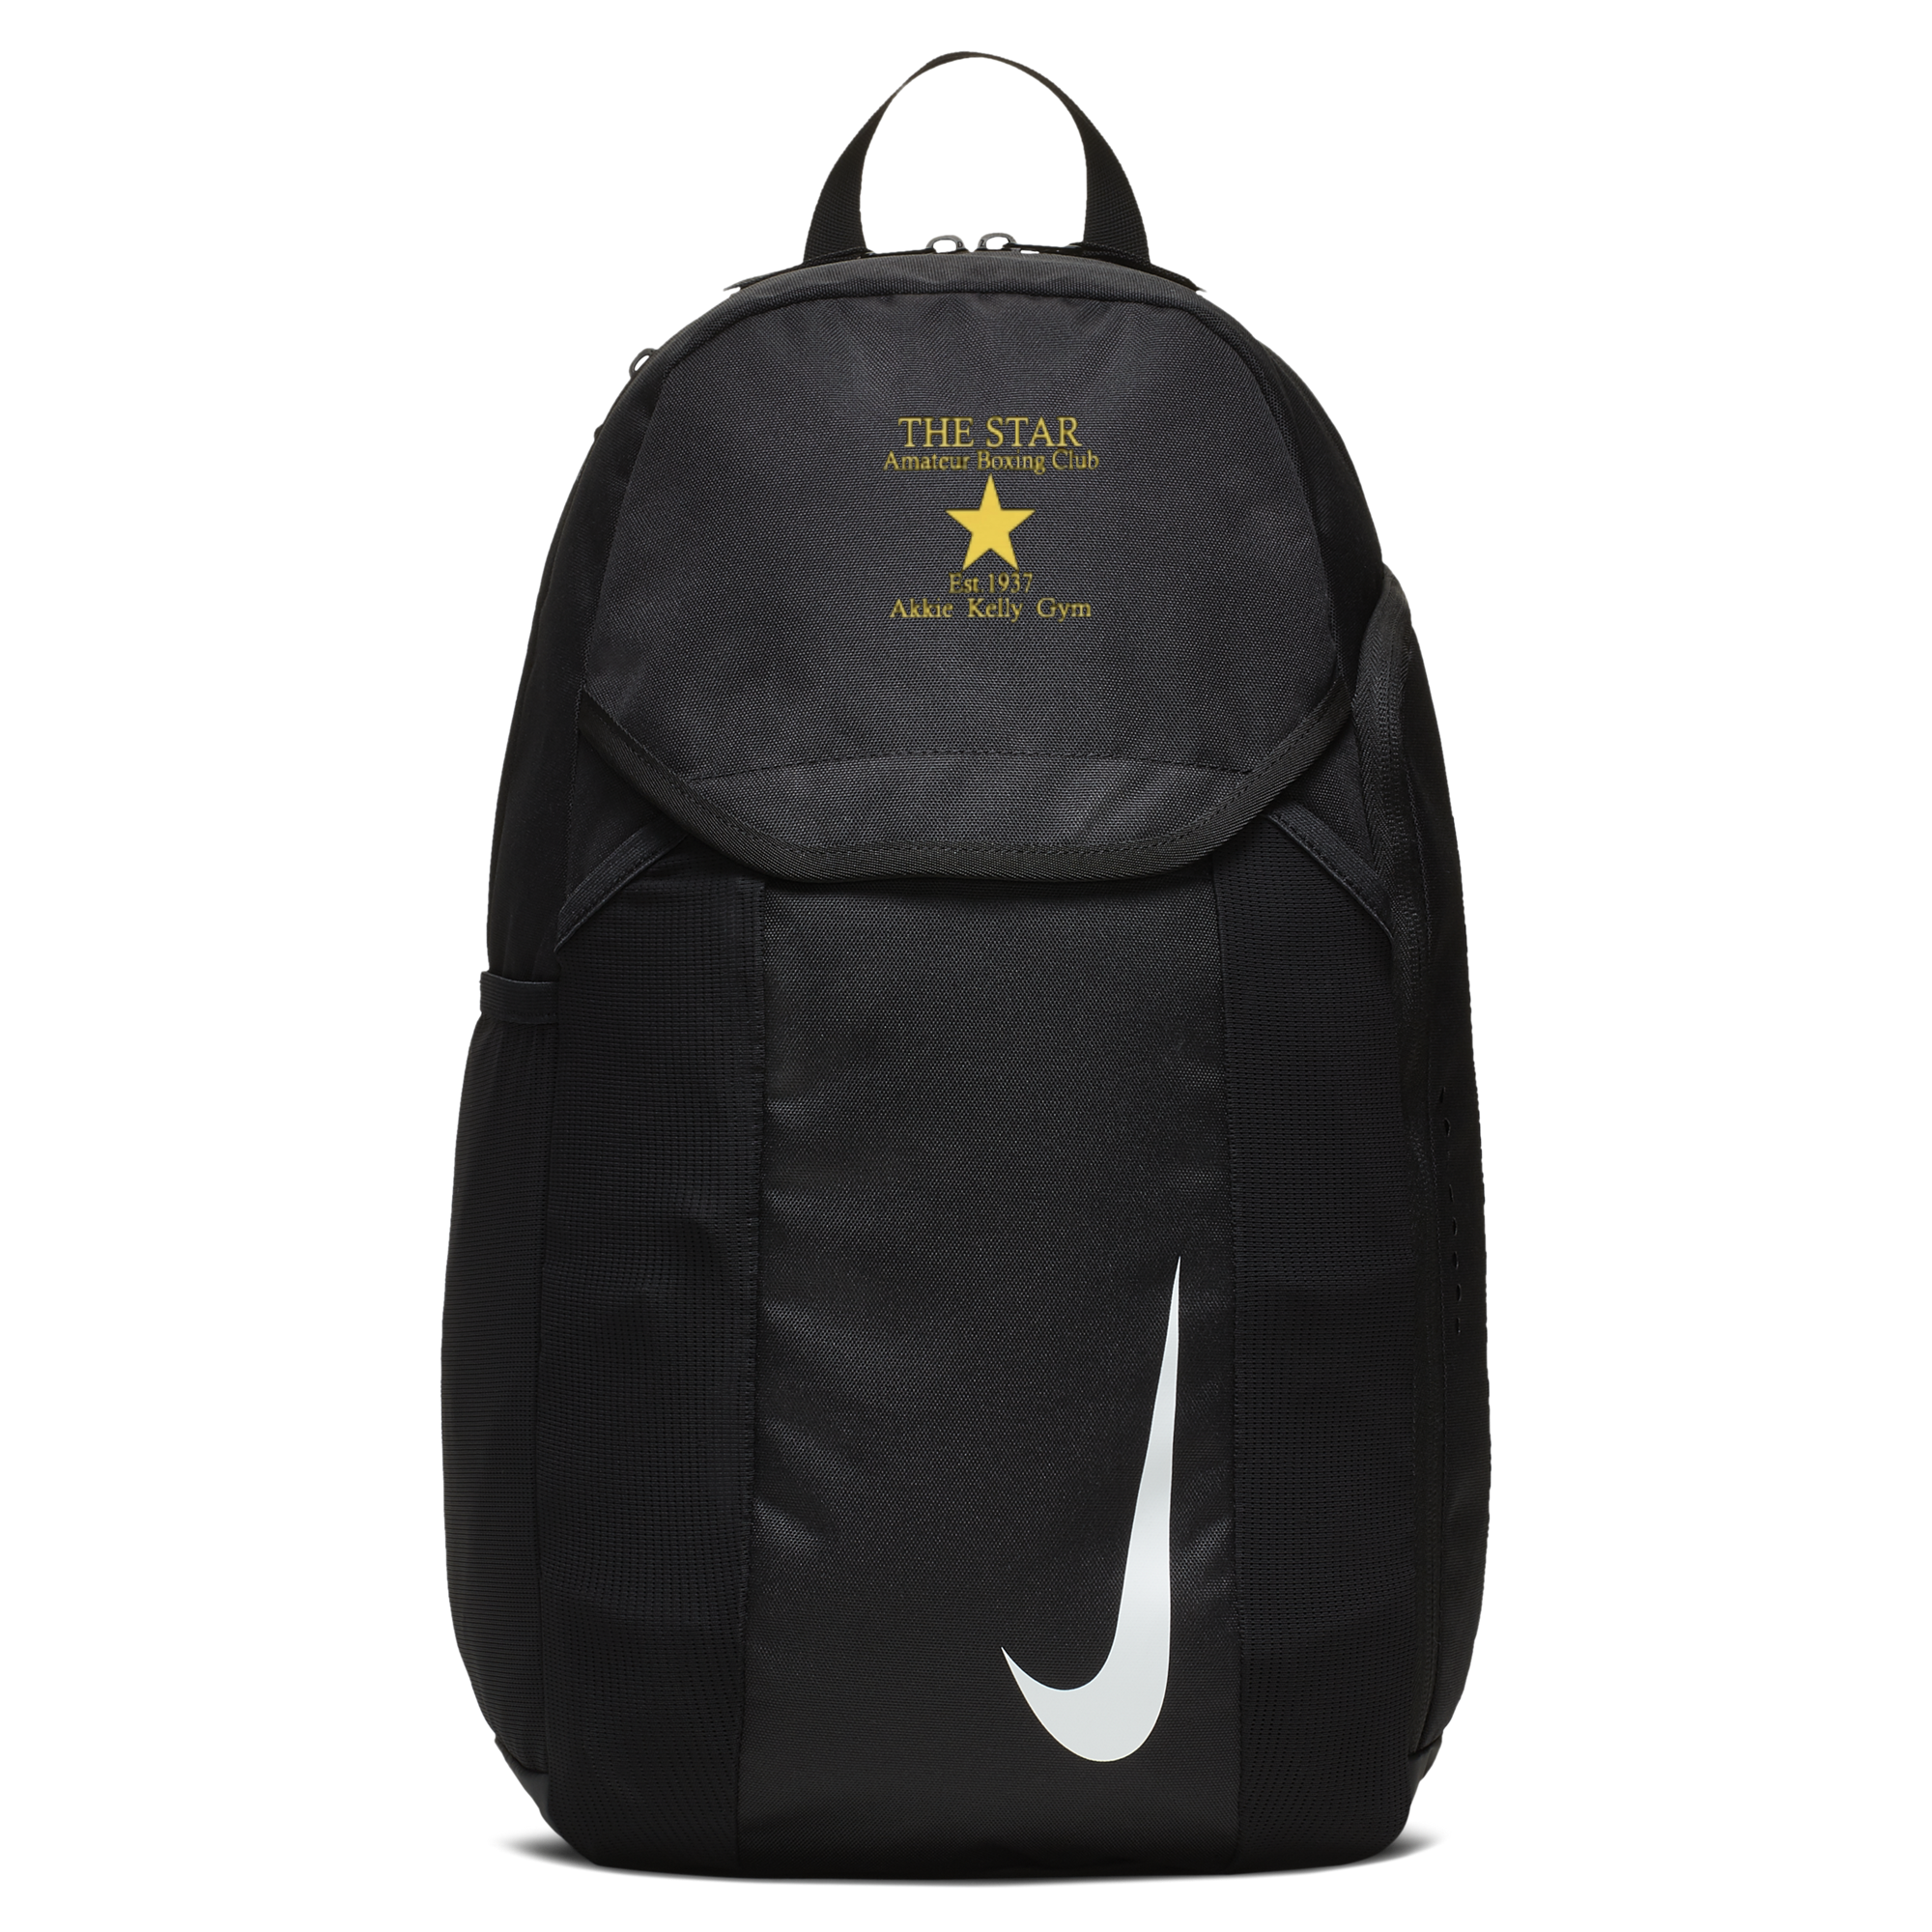 star boxing back pack 36786 p